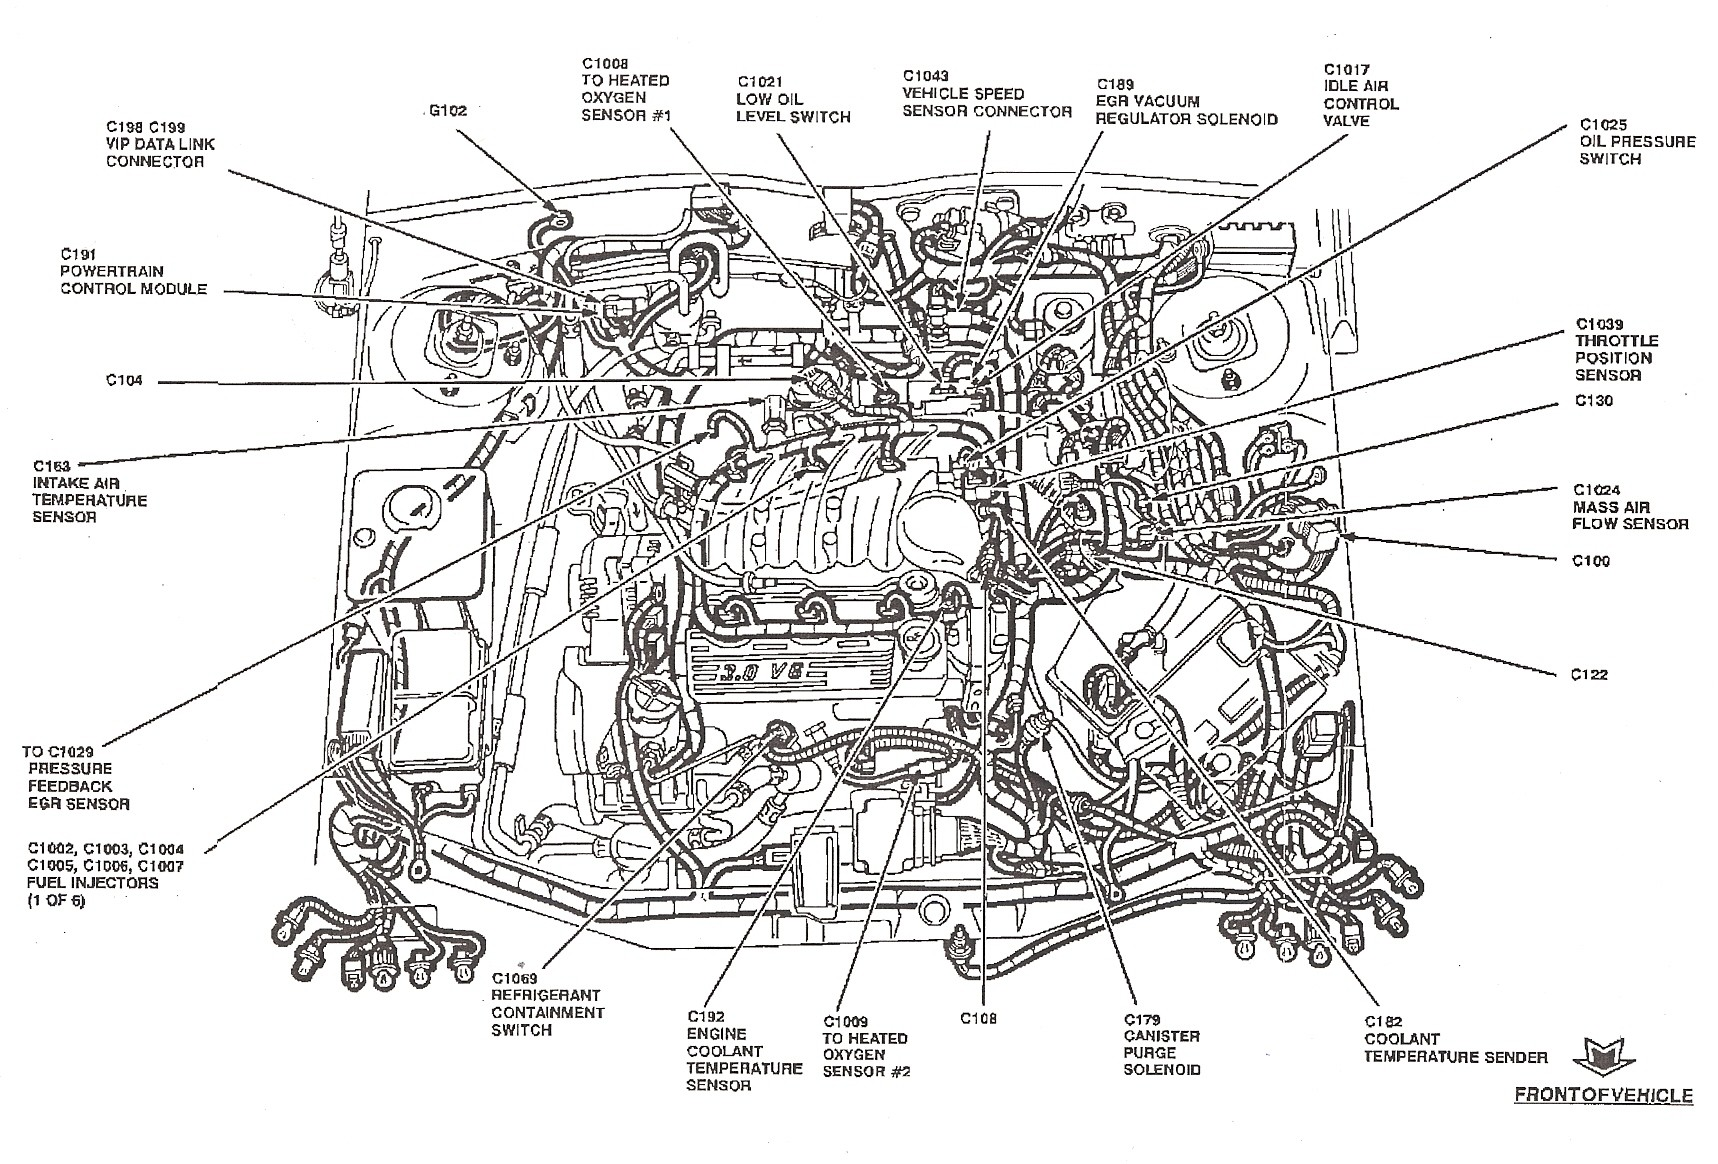 Ford F250 Parts Diagram 1999 Truck Wiring Data Zetec Engine Vacuum Diagrams Instructions Of